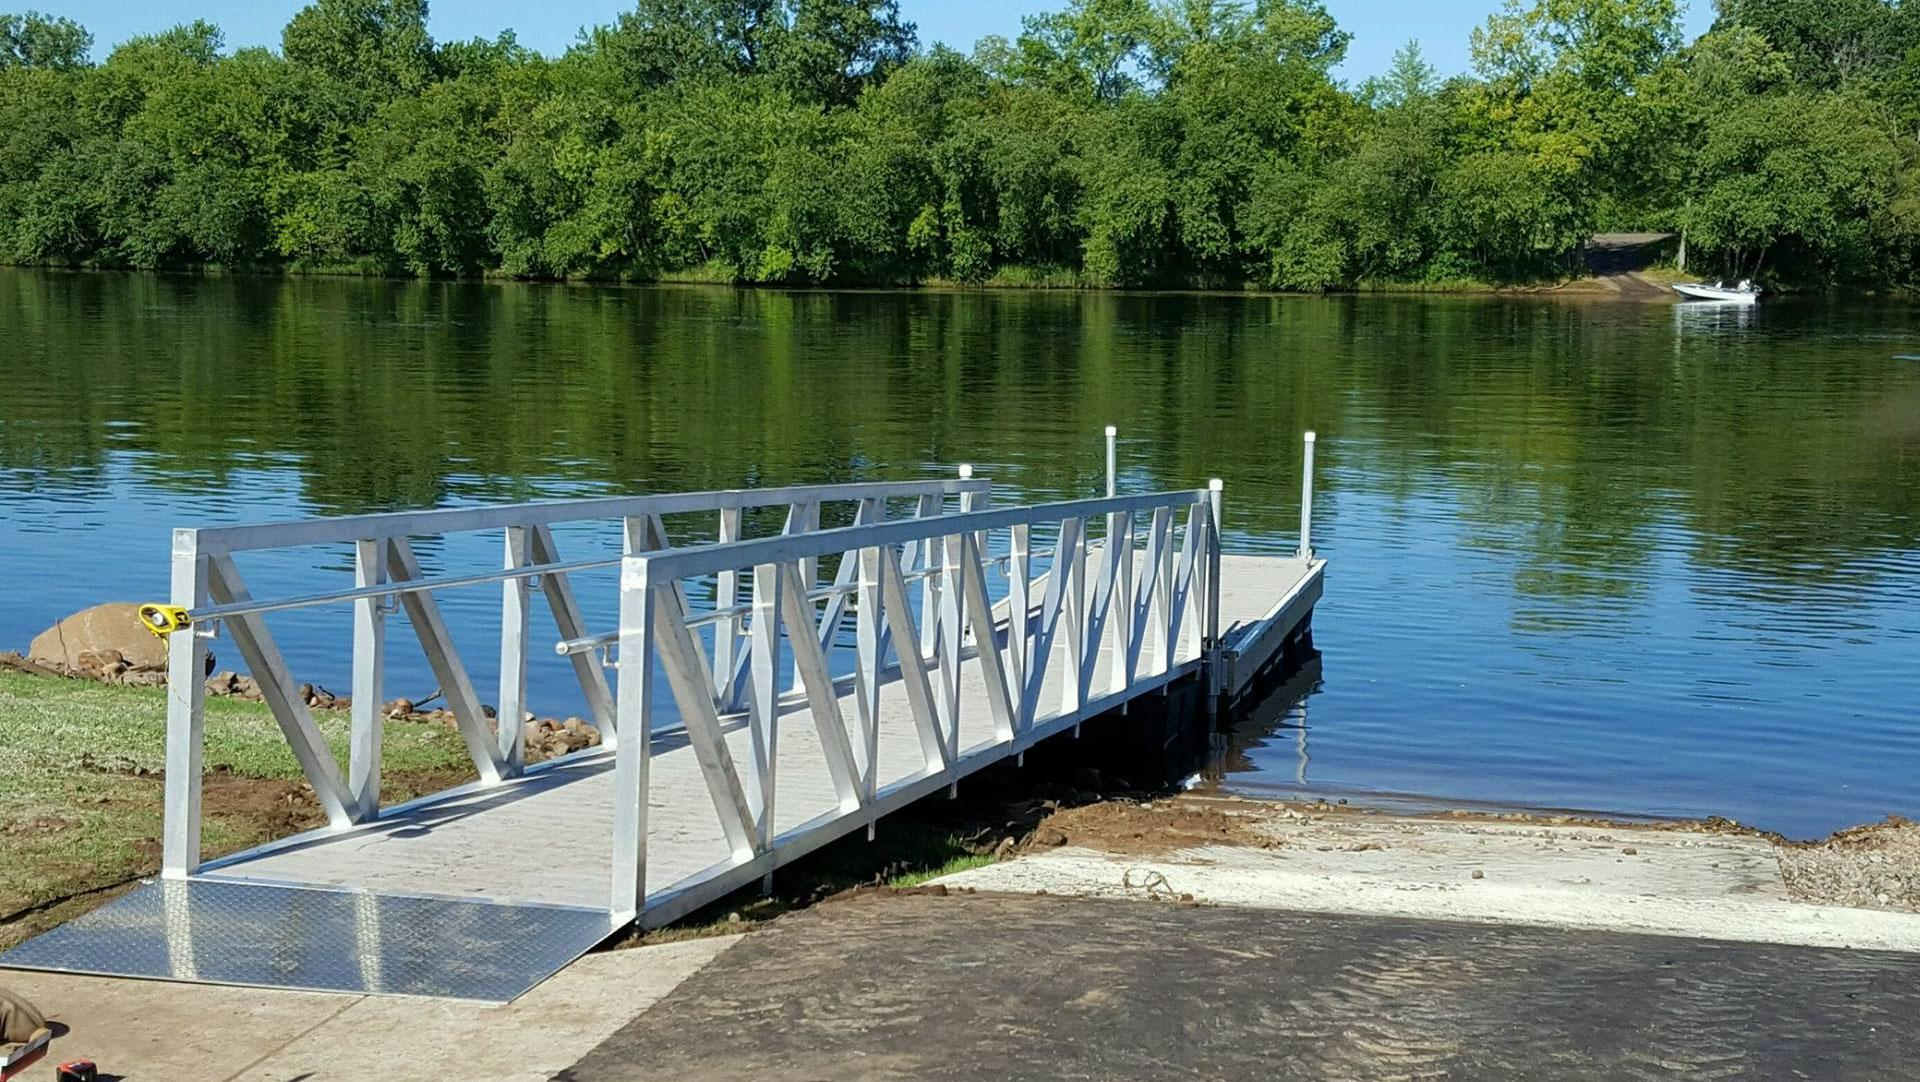 STATE OF THE ART Floating Docks